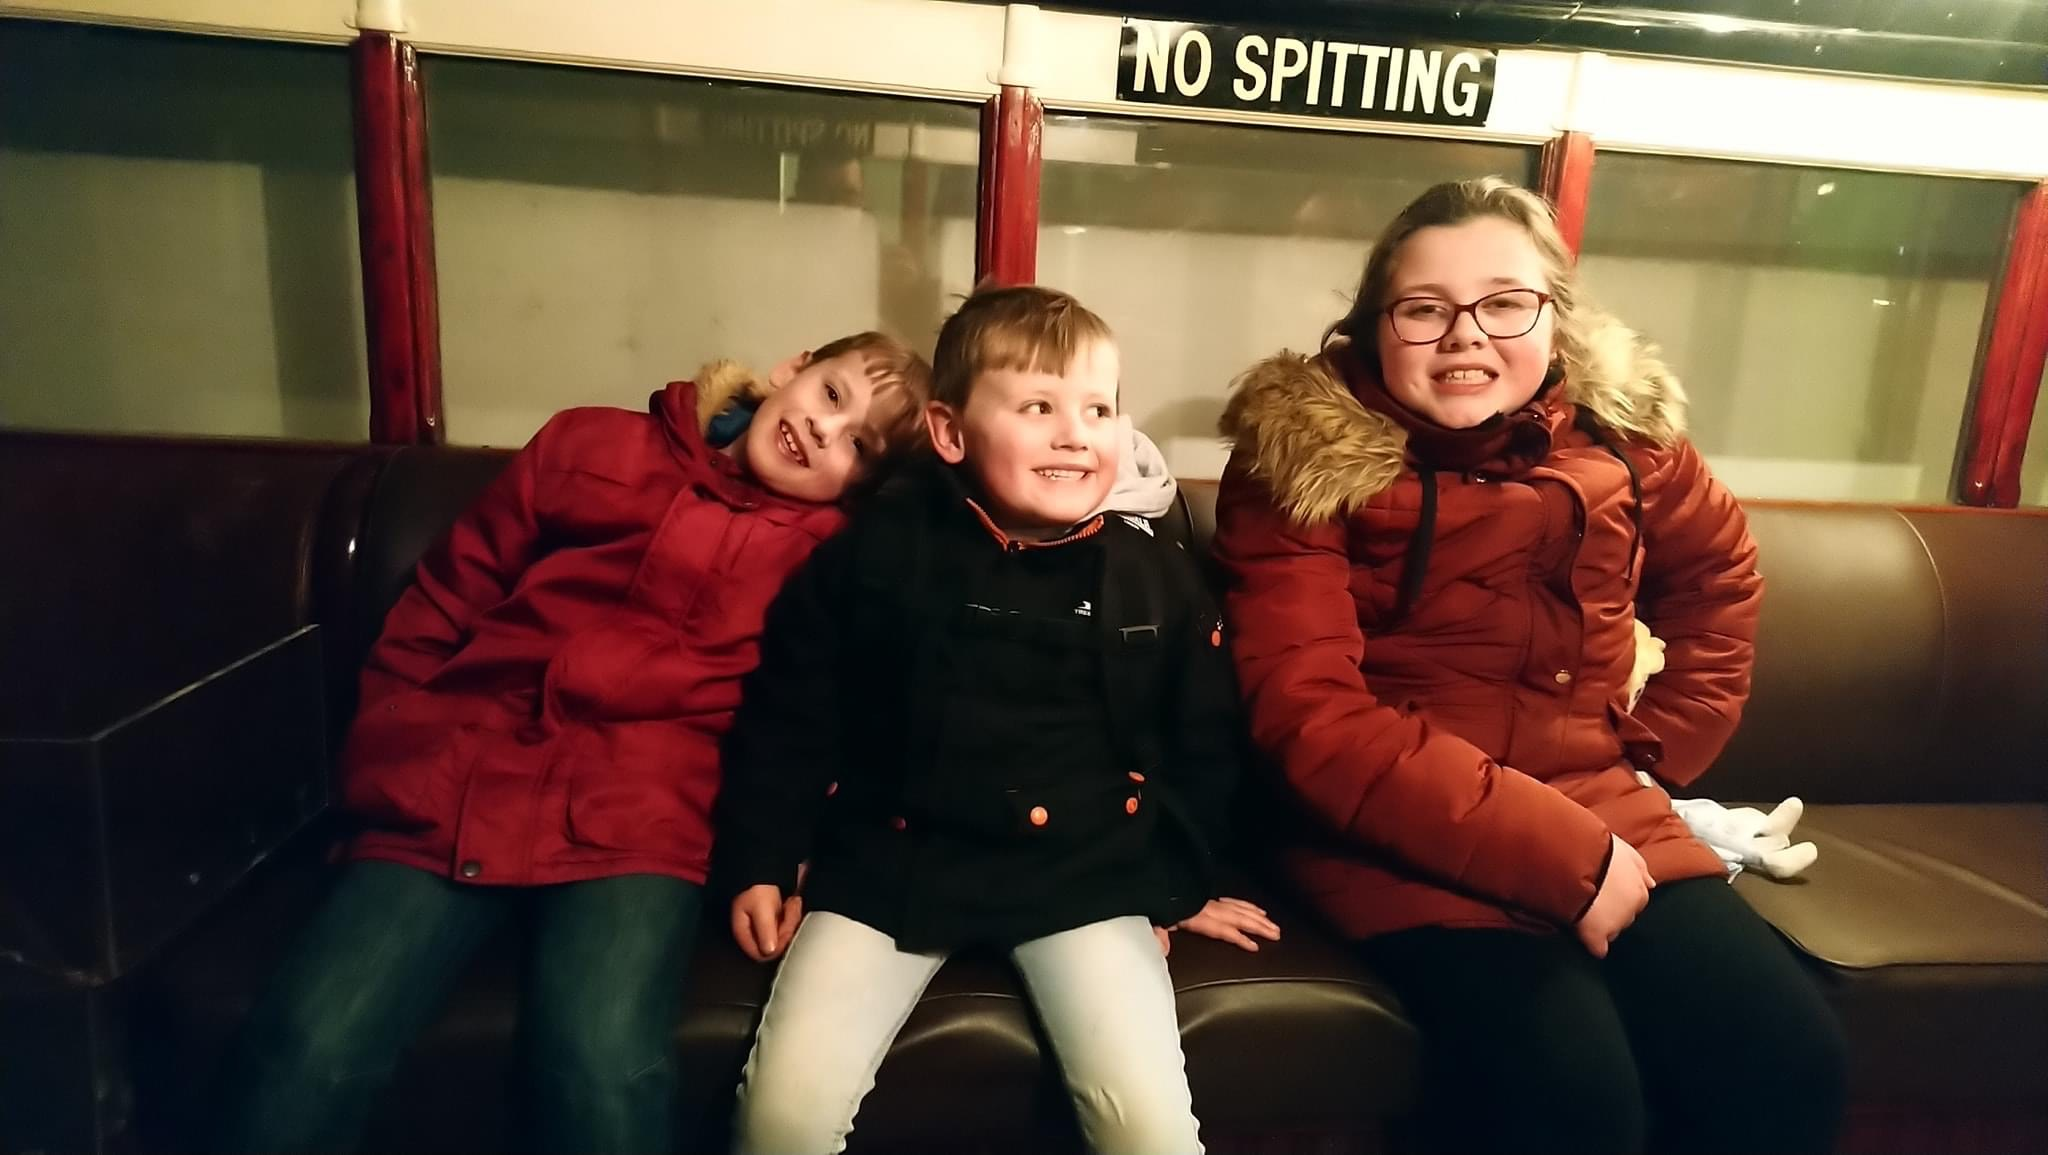 Julia Daley's grandchildren Alexander James, Fiona and Philip Gibson who all died in a fire at their Paisley home last month